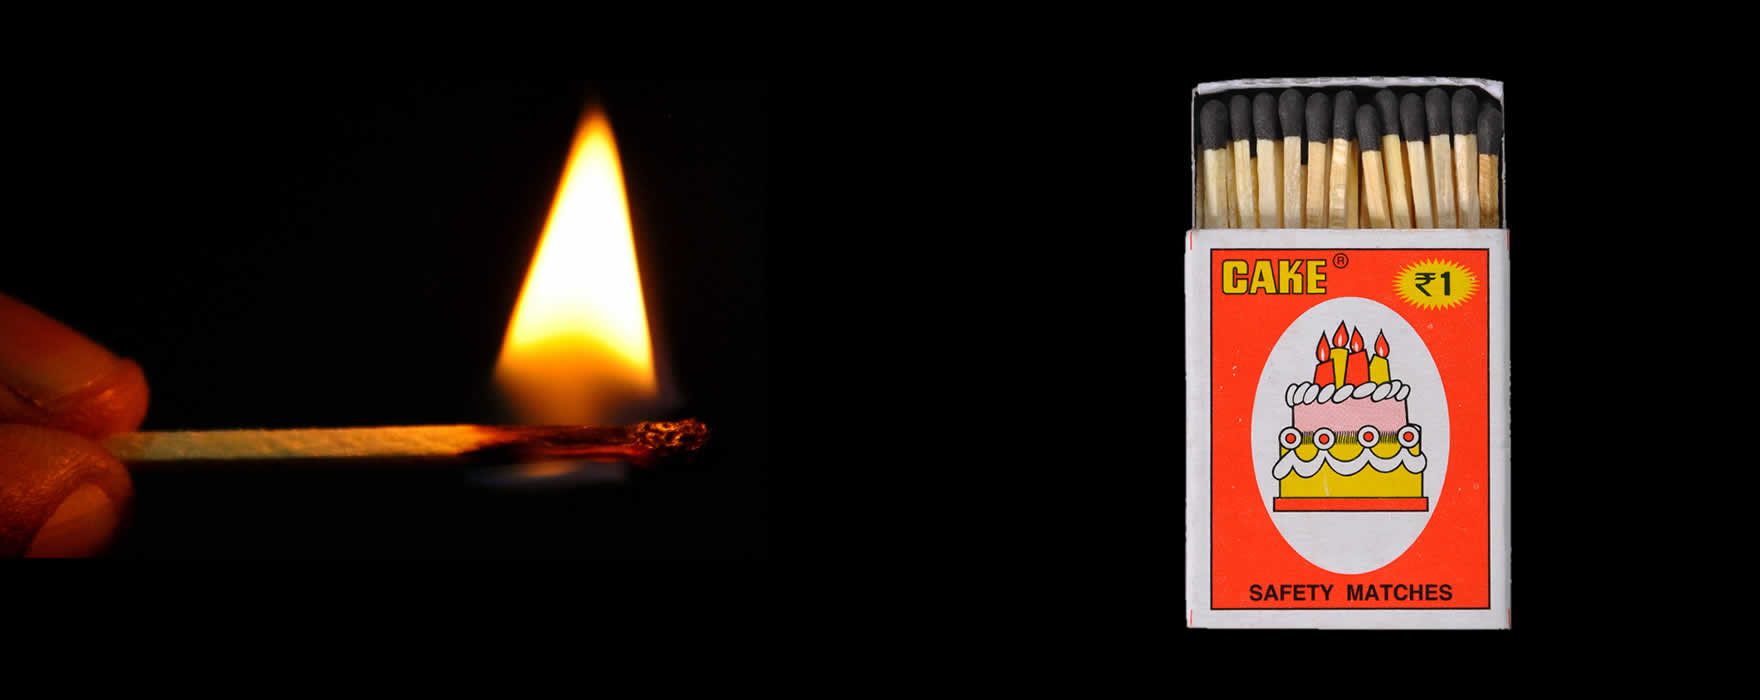 Safety matches exporters